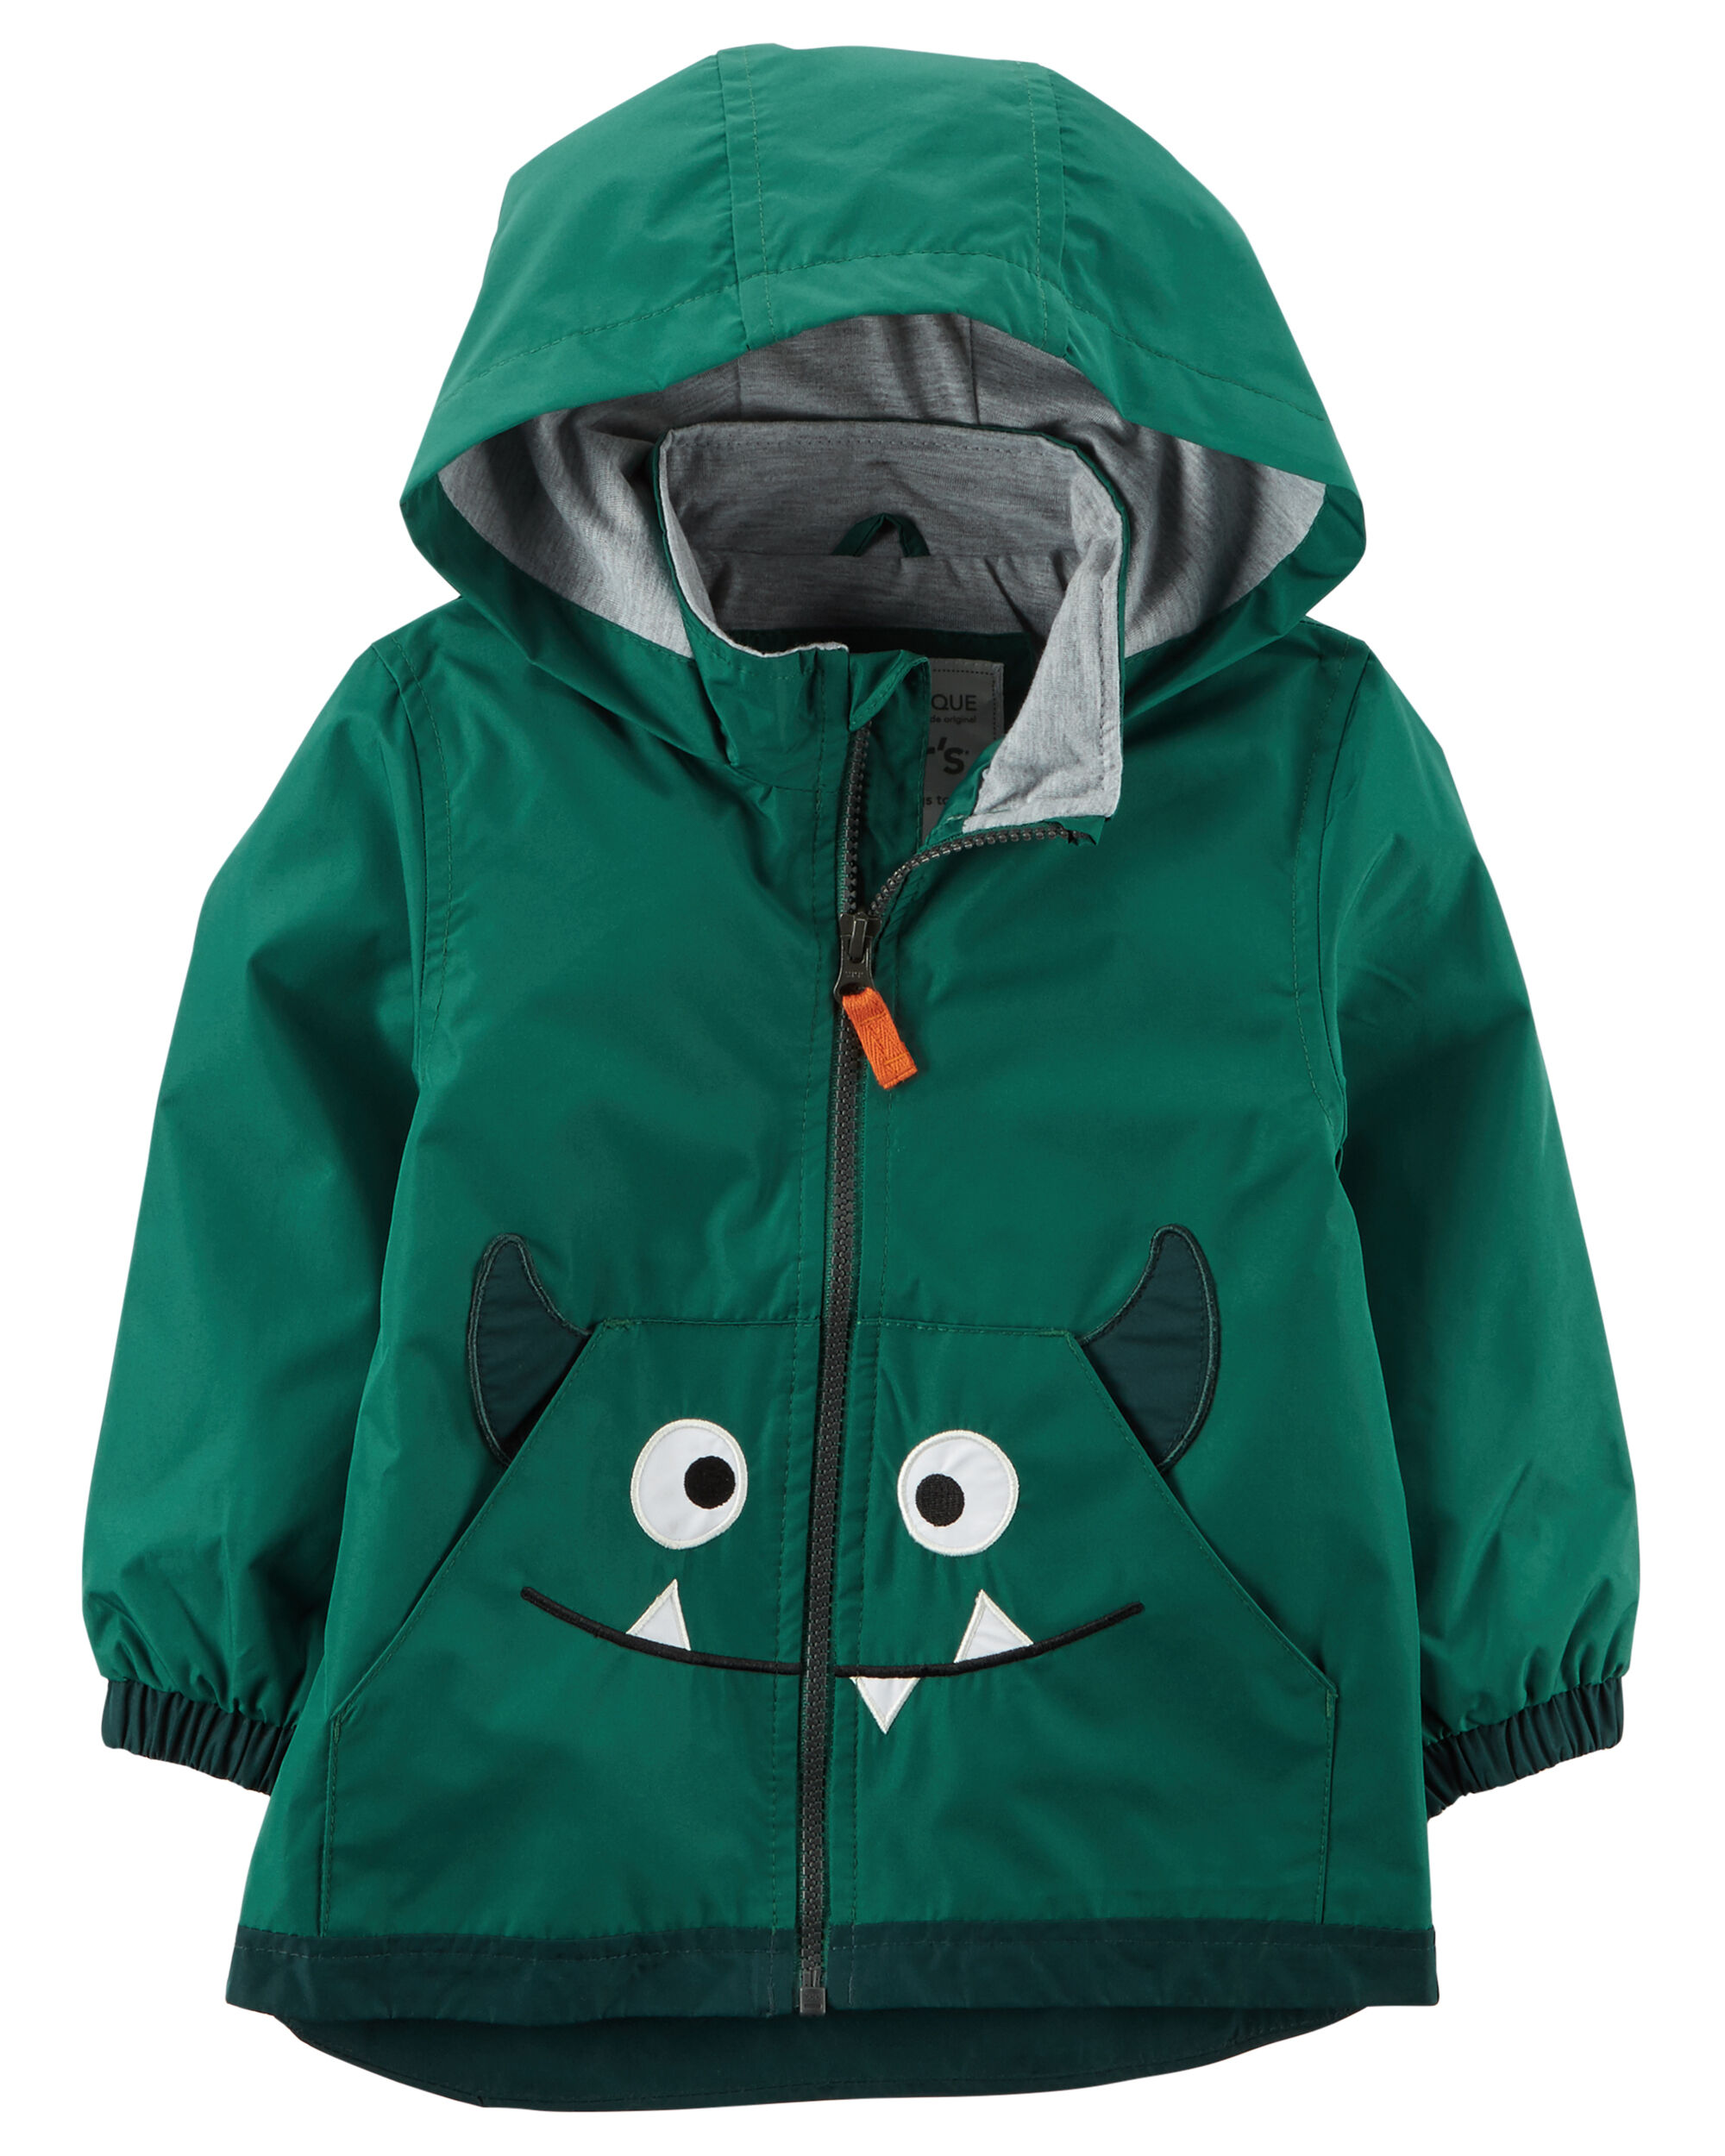 Toddler Boy Rain Coats, Jackets & Outerwear | Carter's | Free Shipping